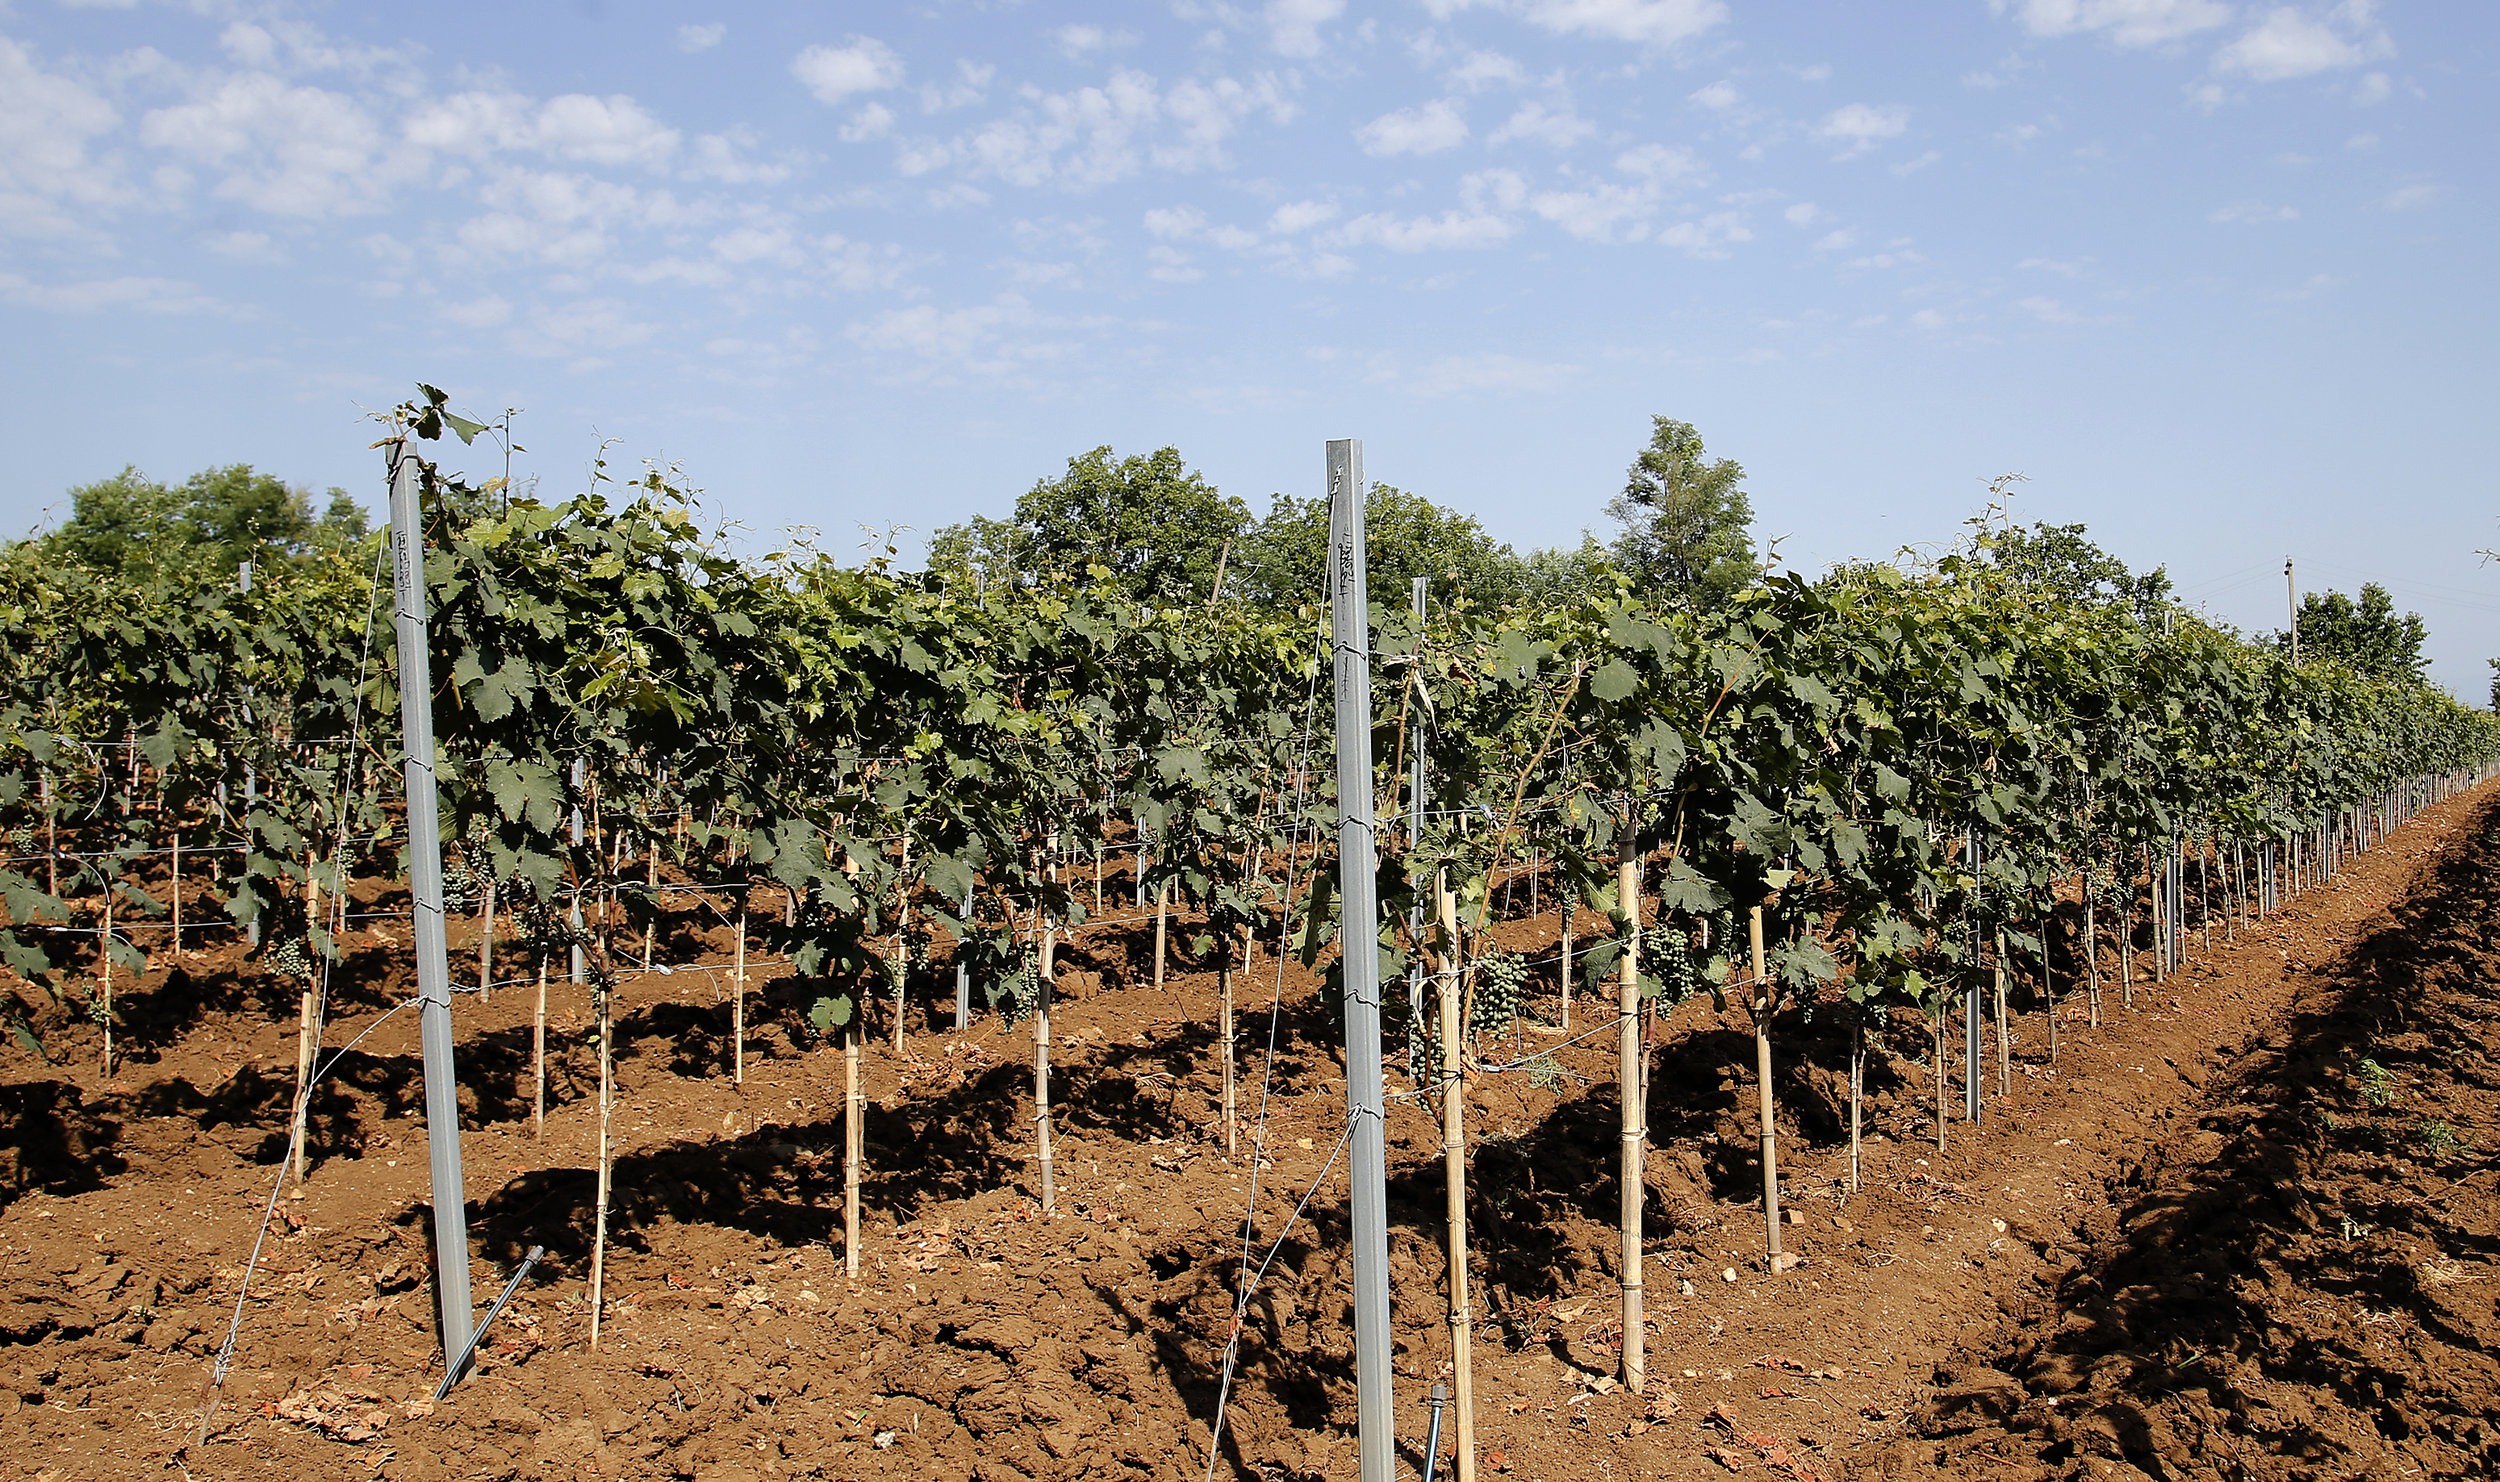 The vines are indigenous to Georgia producing some of the highest quality wine that is exported out of Georgia